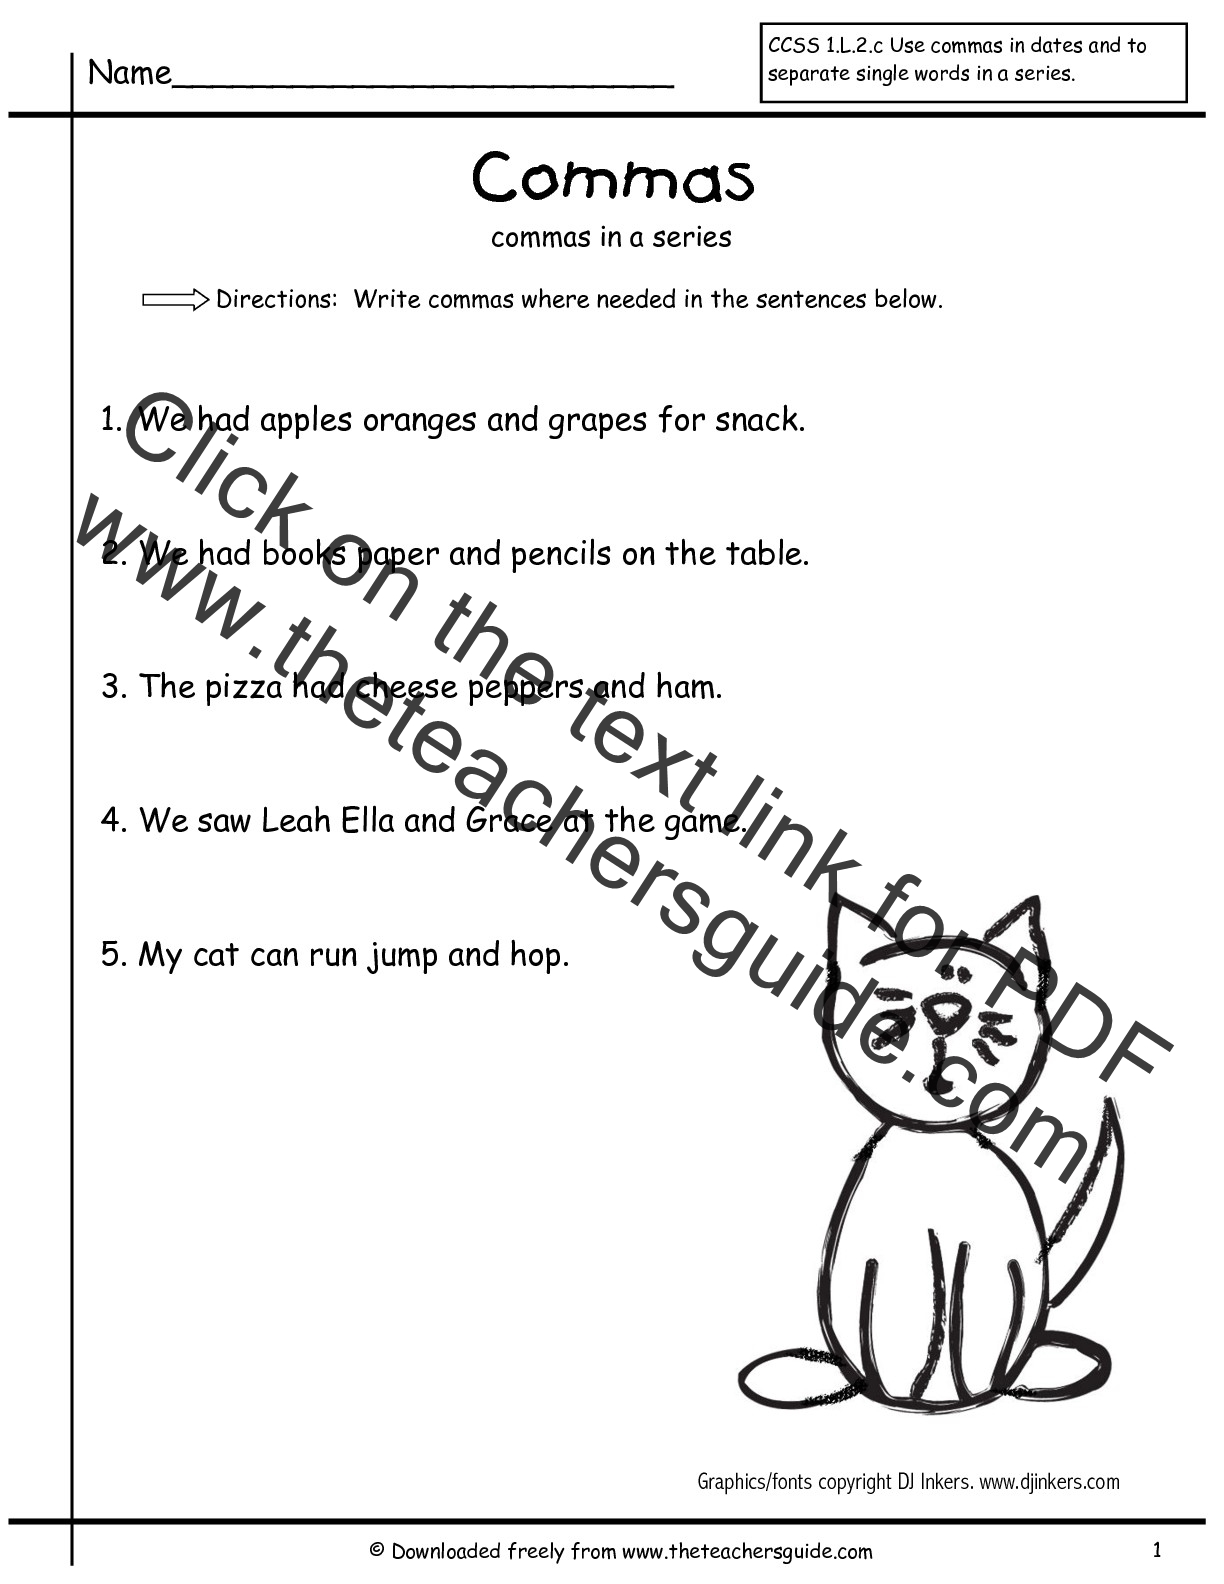 New 337 First Grade Worksheets Commas